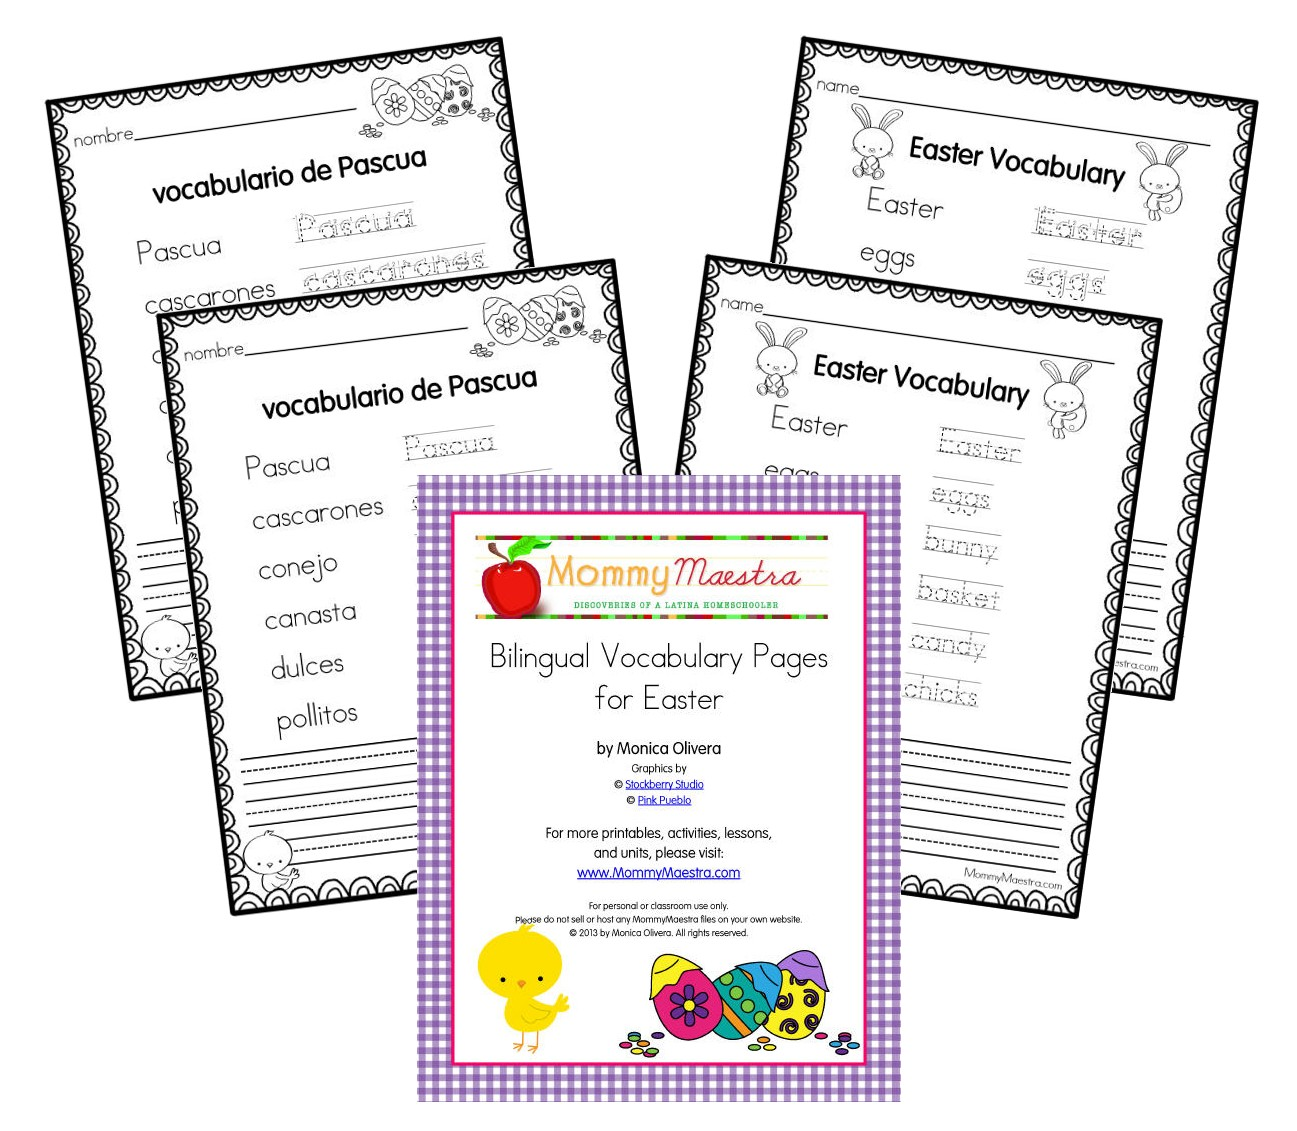 worksheet Spanish Vocabulary Worksheets mommy maestra spanish easter themed vocabulary worksheets printable these worksheet pages come in english or and with directional arrows just dotted lines